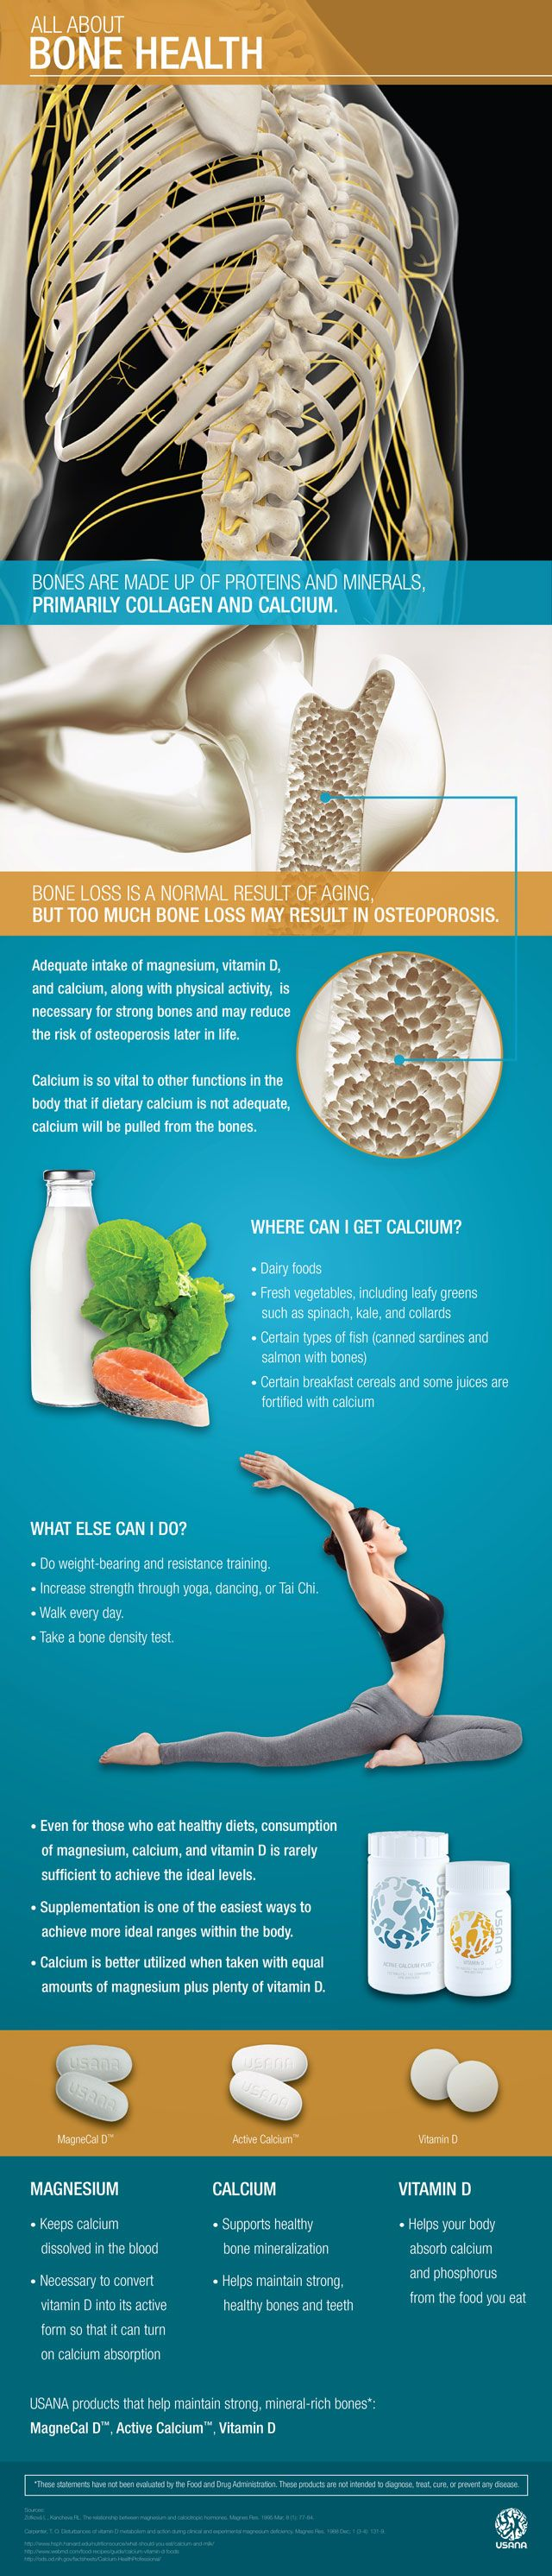 Bone Health Infographic // What's Up, USANA?   Absolute pleasure to be in partnership with this company. Calcium is key for bone health. Repin if you agree.